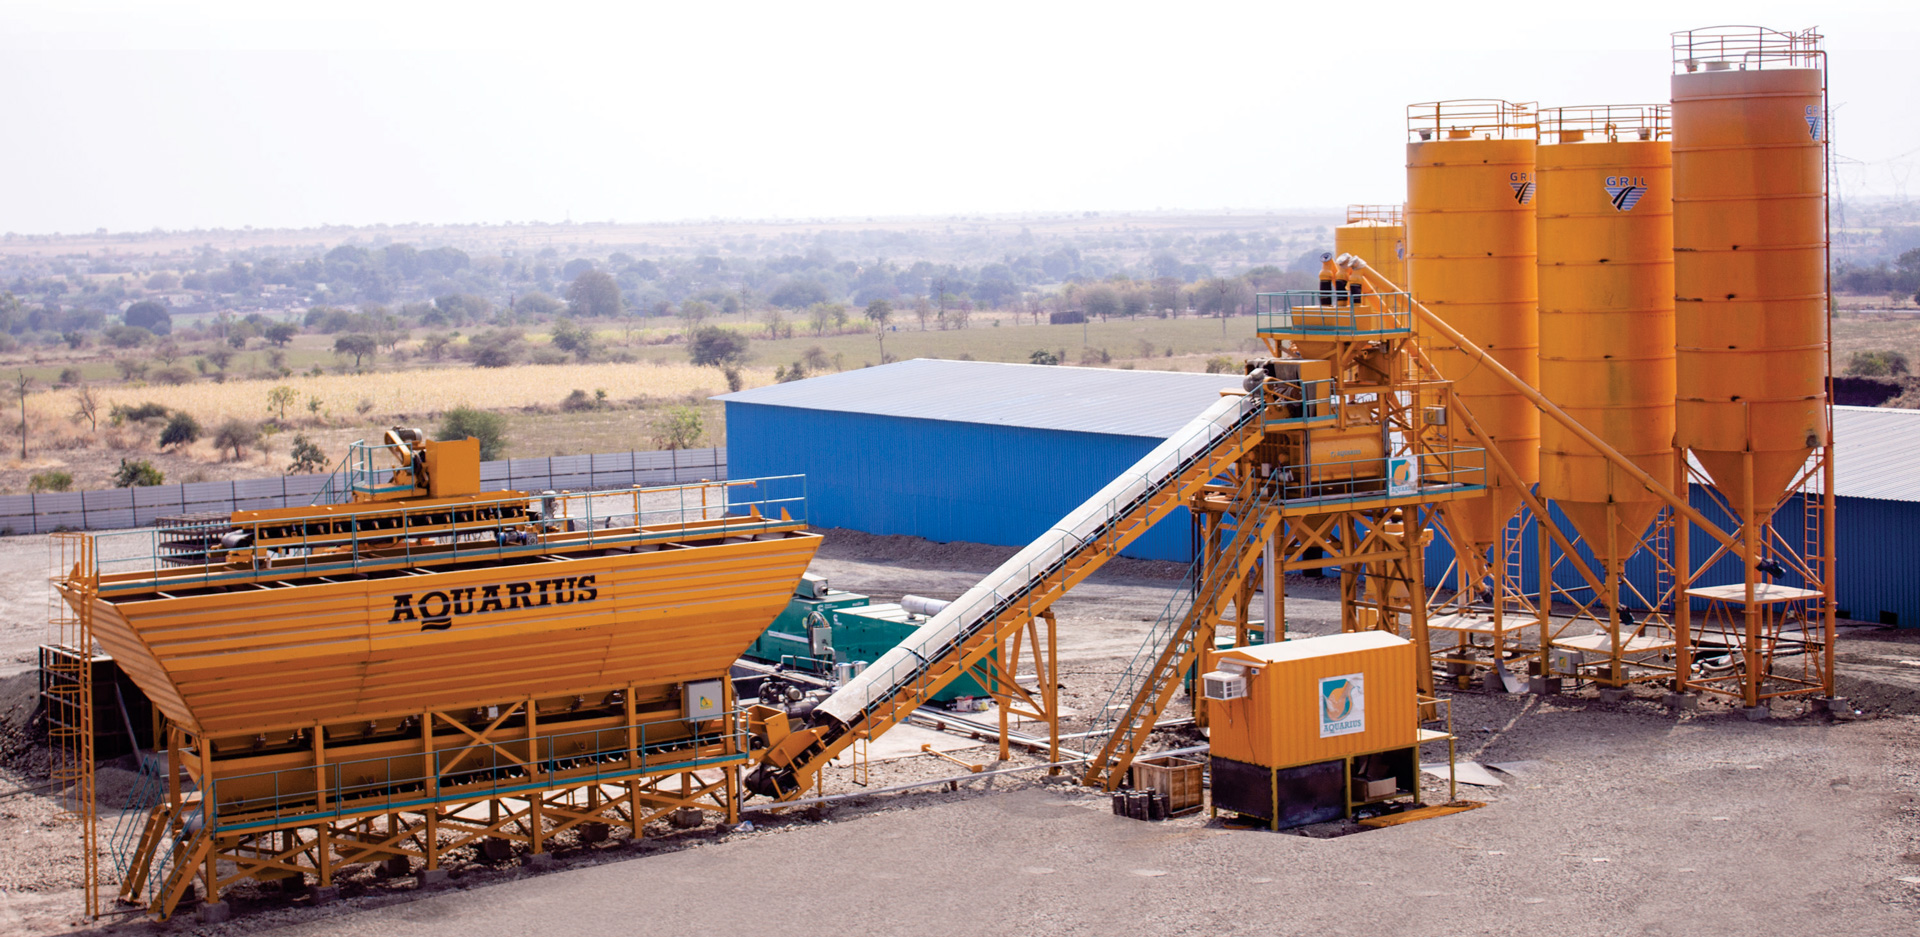 Aquarius SP 120C Batching Plant working at G R INFRA PROJECTS LTD. for AKKALKOT-SOLAPUR Concrete Road Project